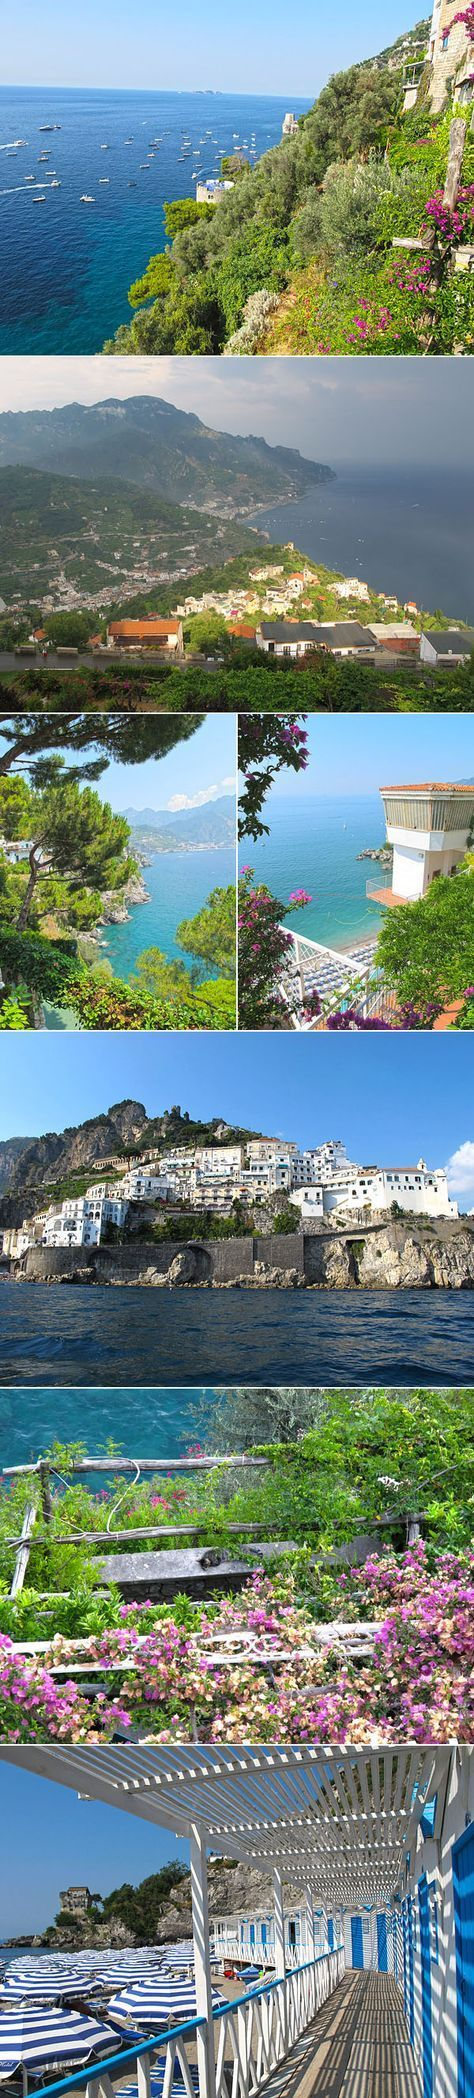 La dolce vita: 9 things to do on the Amalfi coast | When people speak of their trip to Amalfi Coast, they often do so with a unique glitter in their eyes and a hint of nostalgia in their voice. A trip to that gorgeous part of the Italian peninsula is so awe inspiring and I am now one of those people with a glitter in my … | Via Will Travel For Food